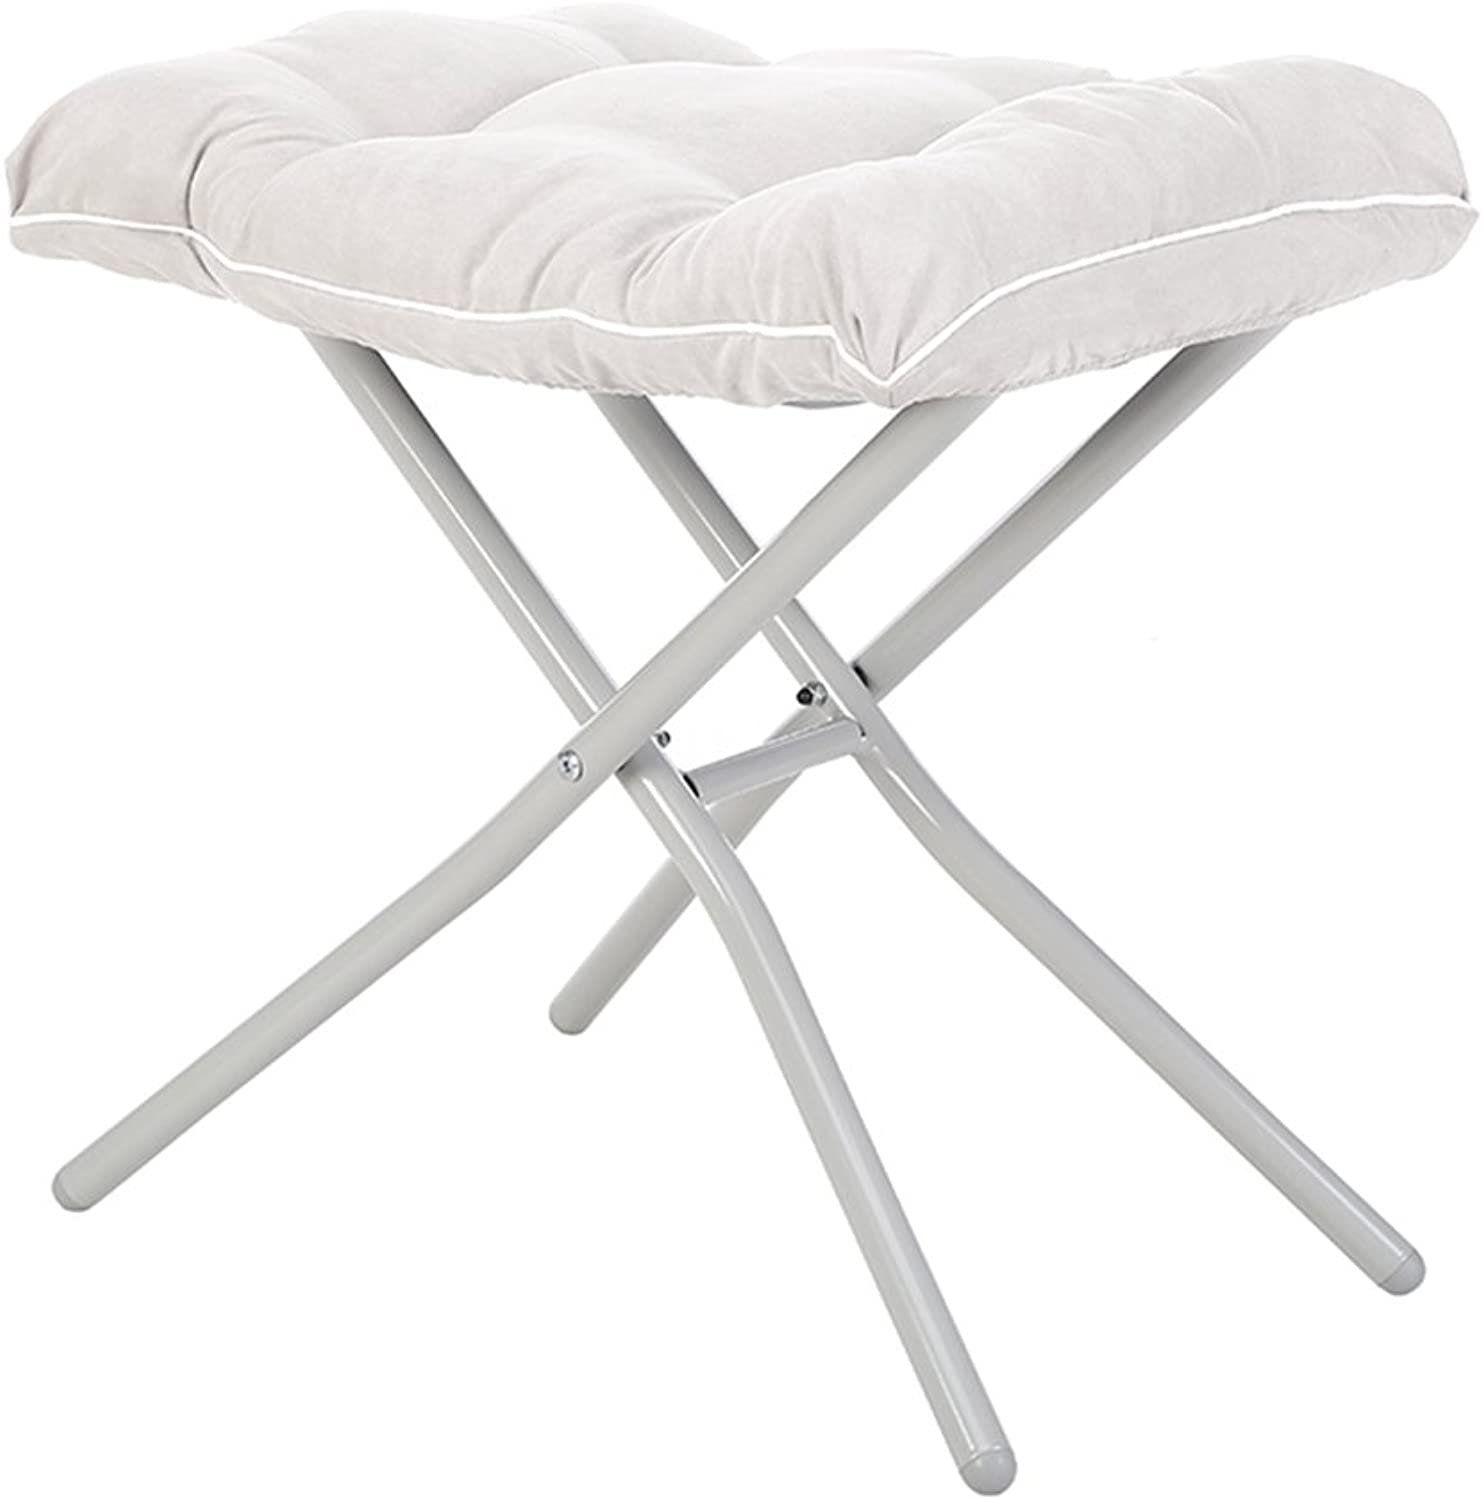 Chairs Folding Chair Stool Folding Stool Home Fishing Stool Small Bench shoes Bench Portable Stool Sofa Bench (color   White, Size   38  46  50cm)